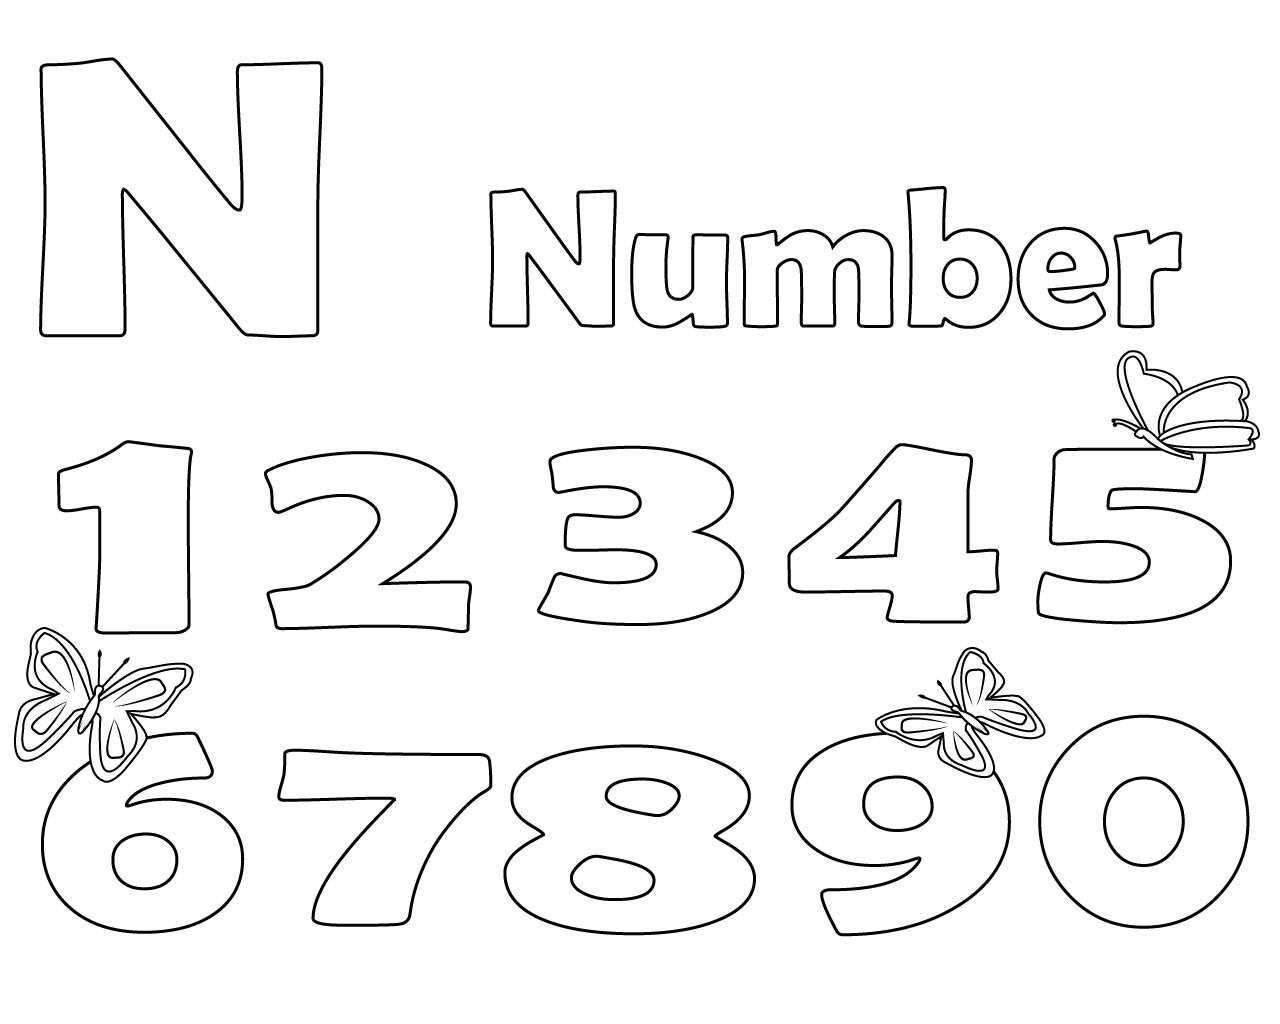 Printable Letter N Coloring Page For Your Loved Ones